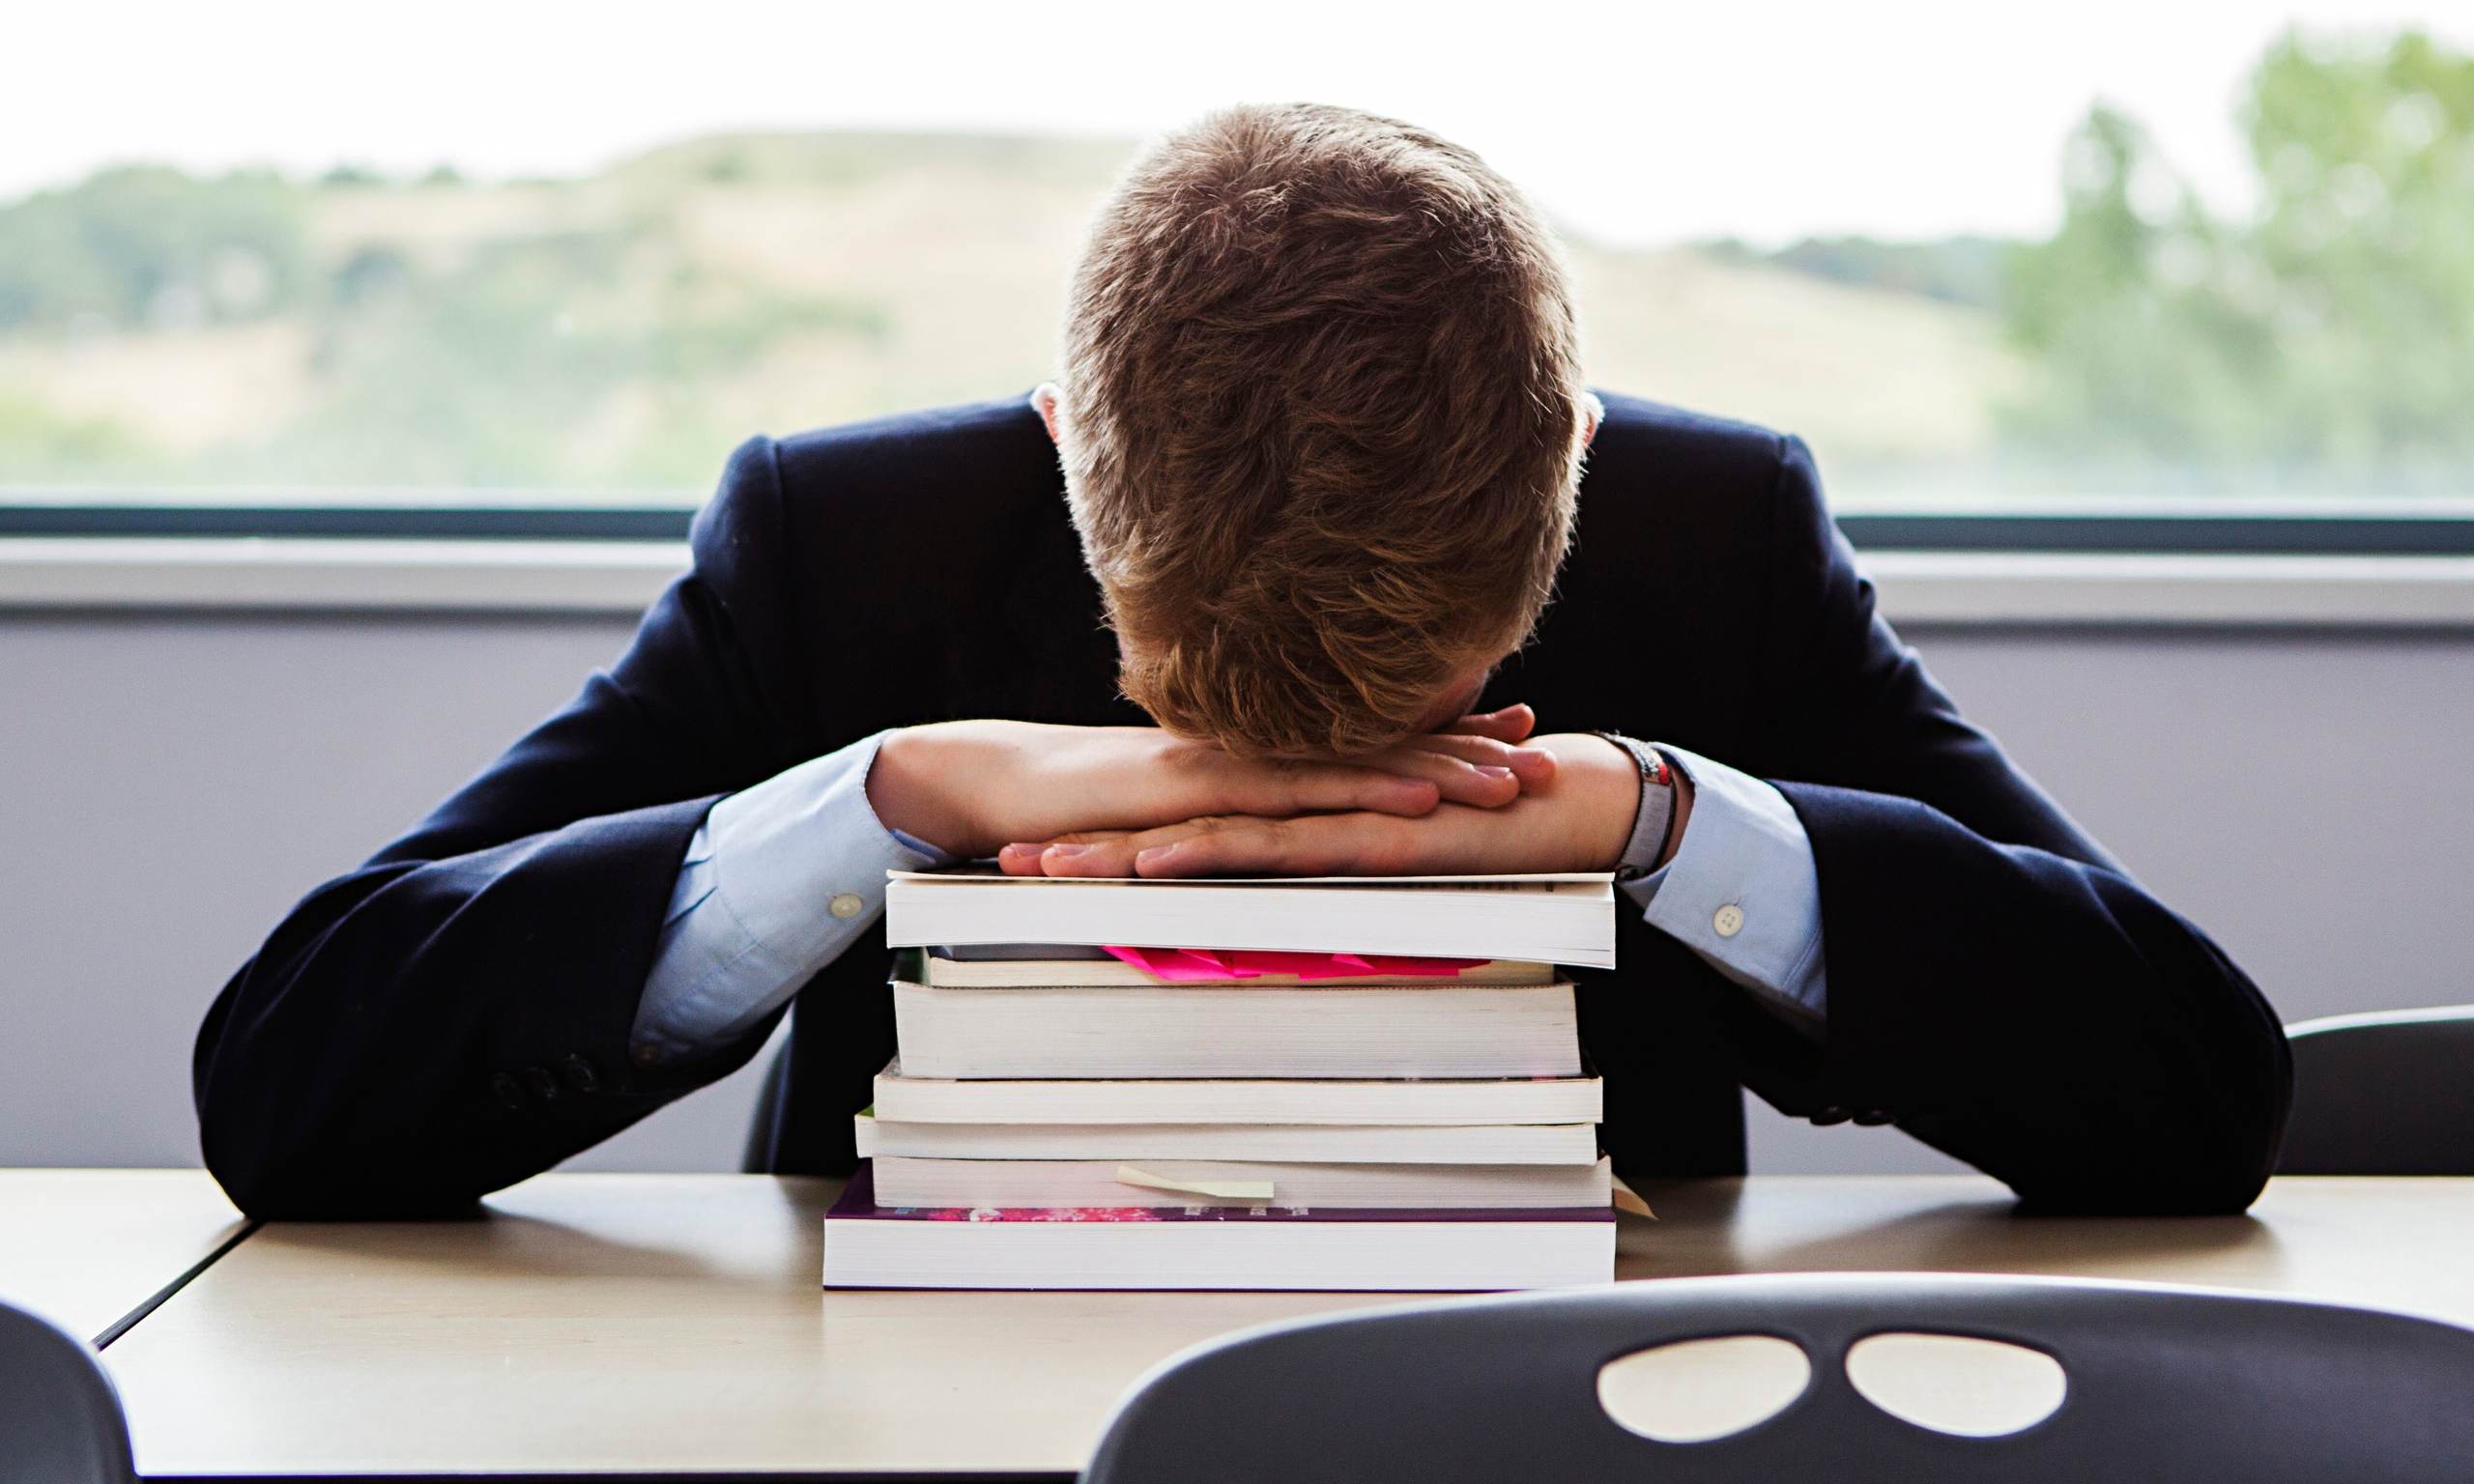 Concern at child anxiety, London pupils do better and behaviour management